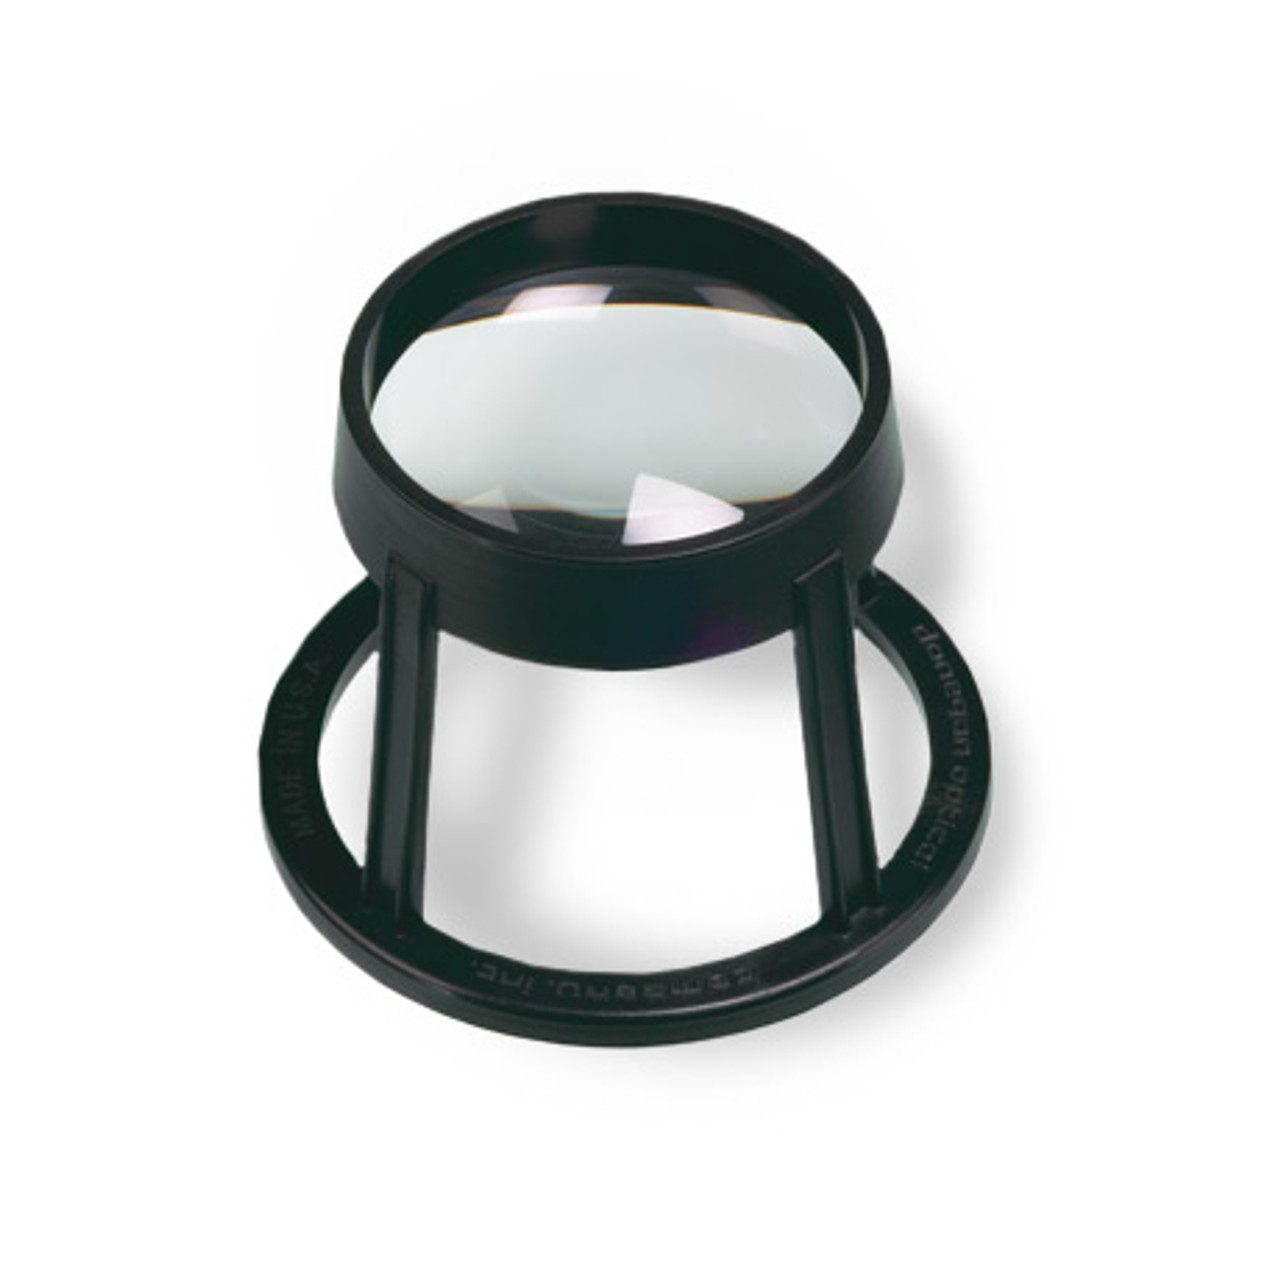 5X Open Stand 60MM Aspheric Lens Loupe Magnifier , A-2028-5X